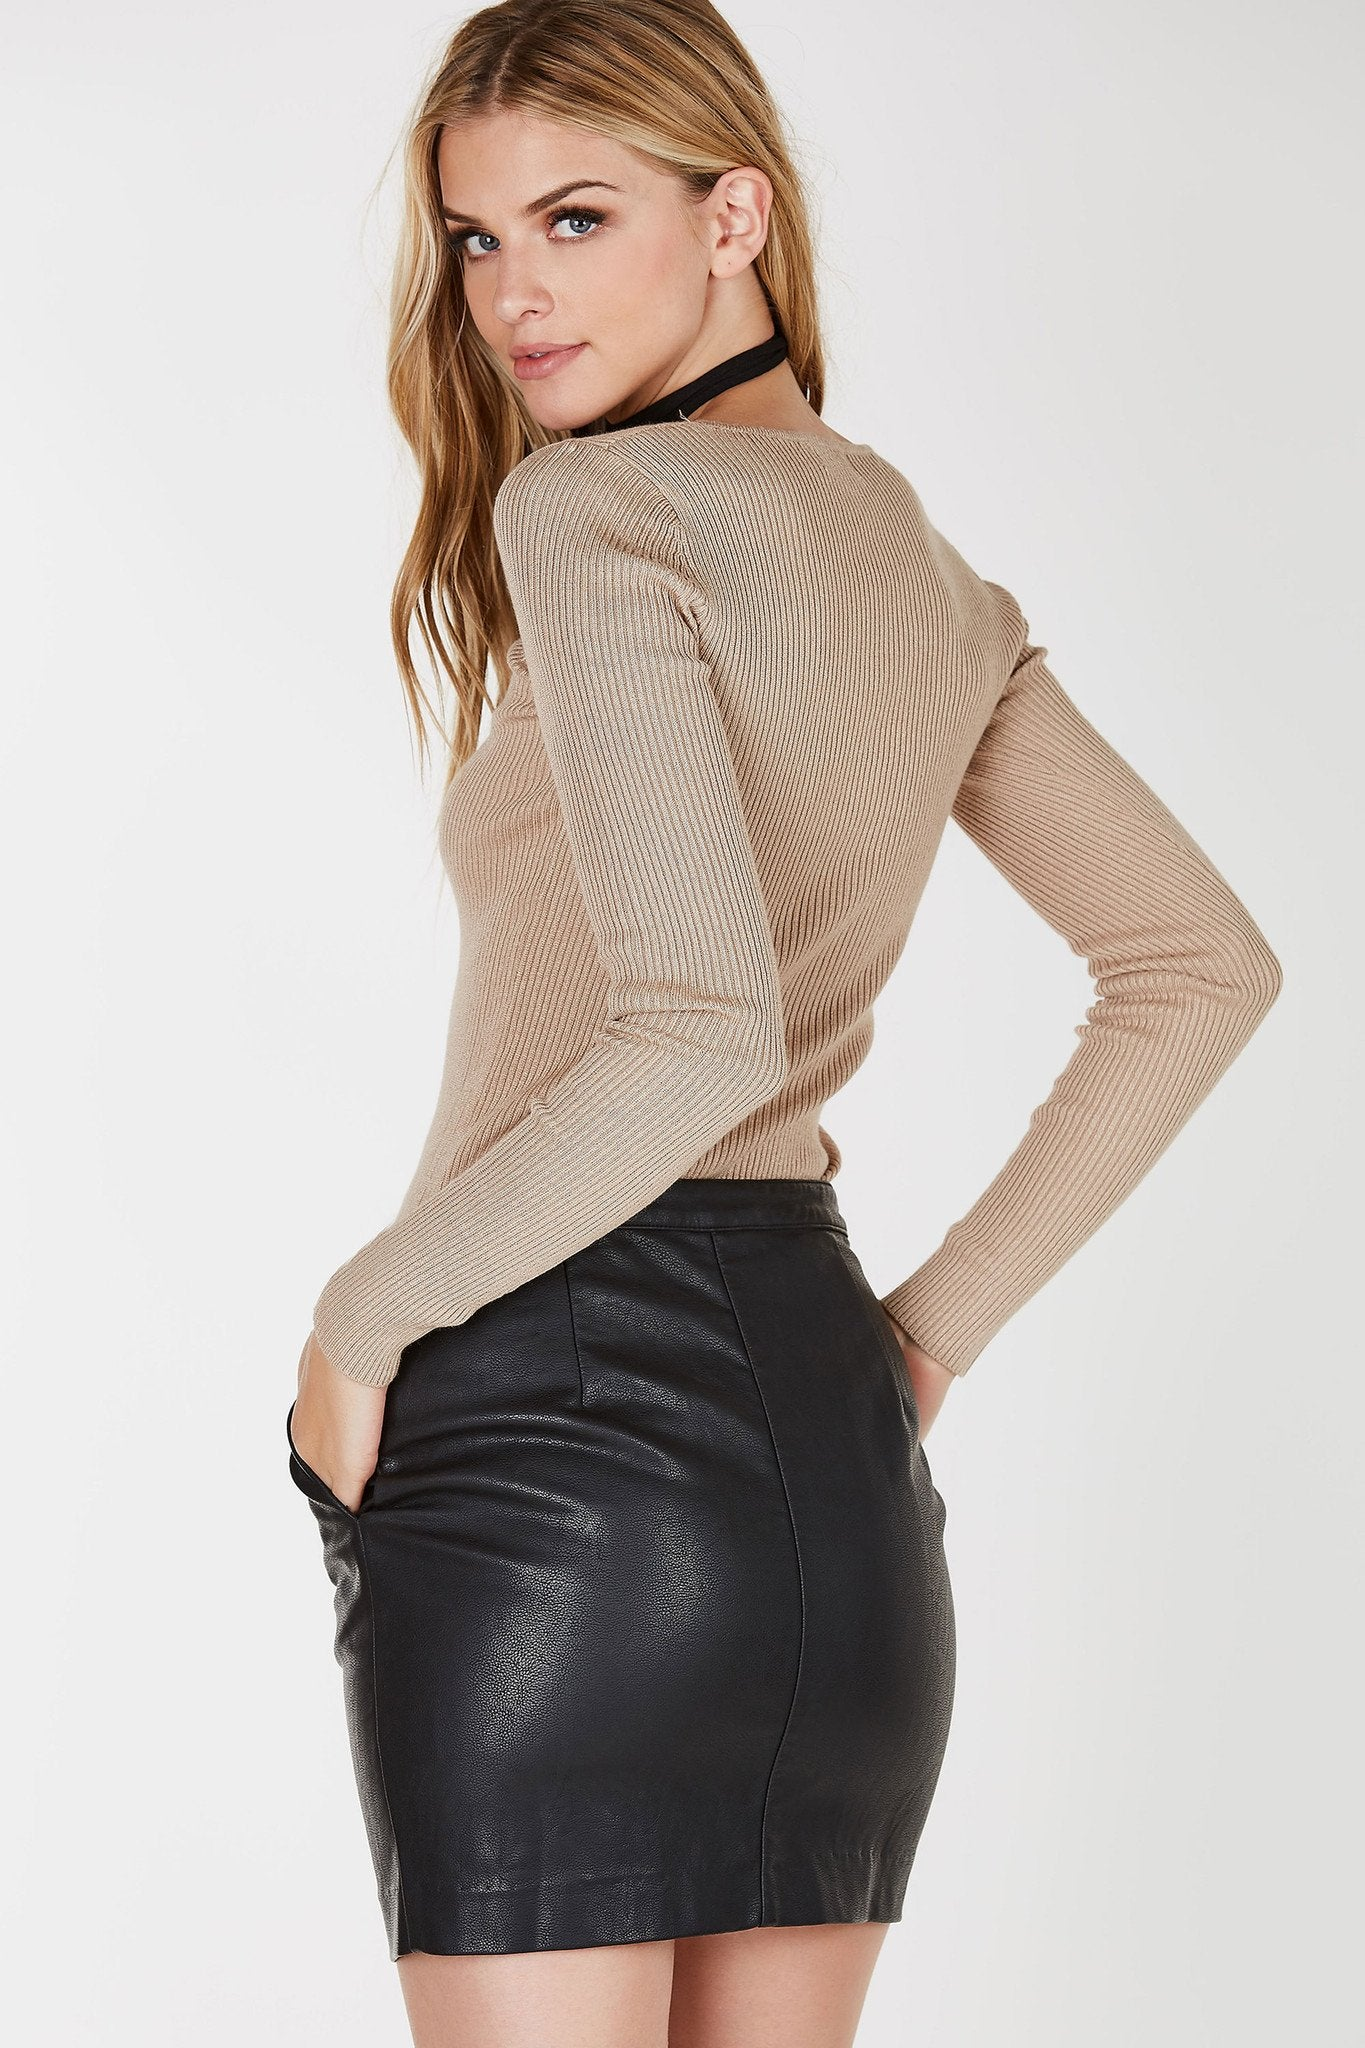 Ribbed long sleeve top with wide V-neckline. Straight hem with body hugging fit.